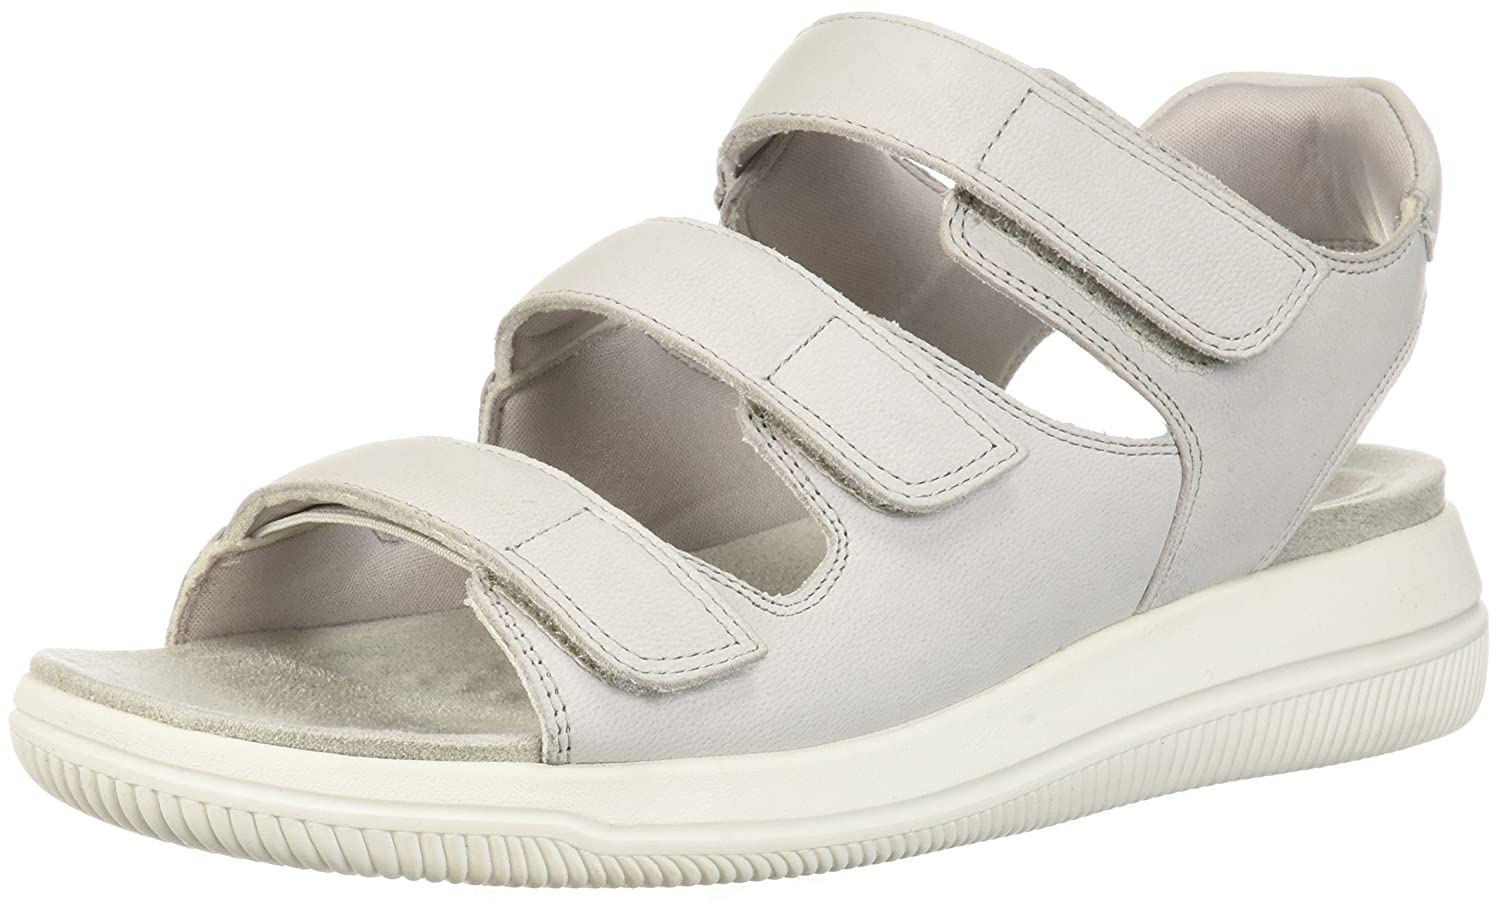 Easy Spirit Women's Shadow8 Slipper B077YDLKN8 8.5 B(M) US|Grey